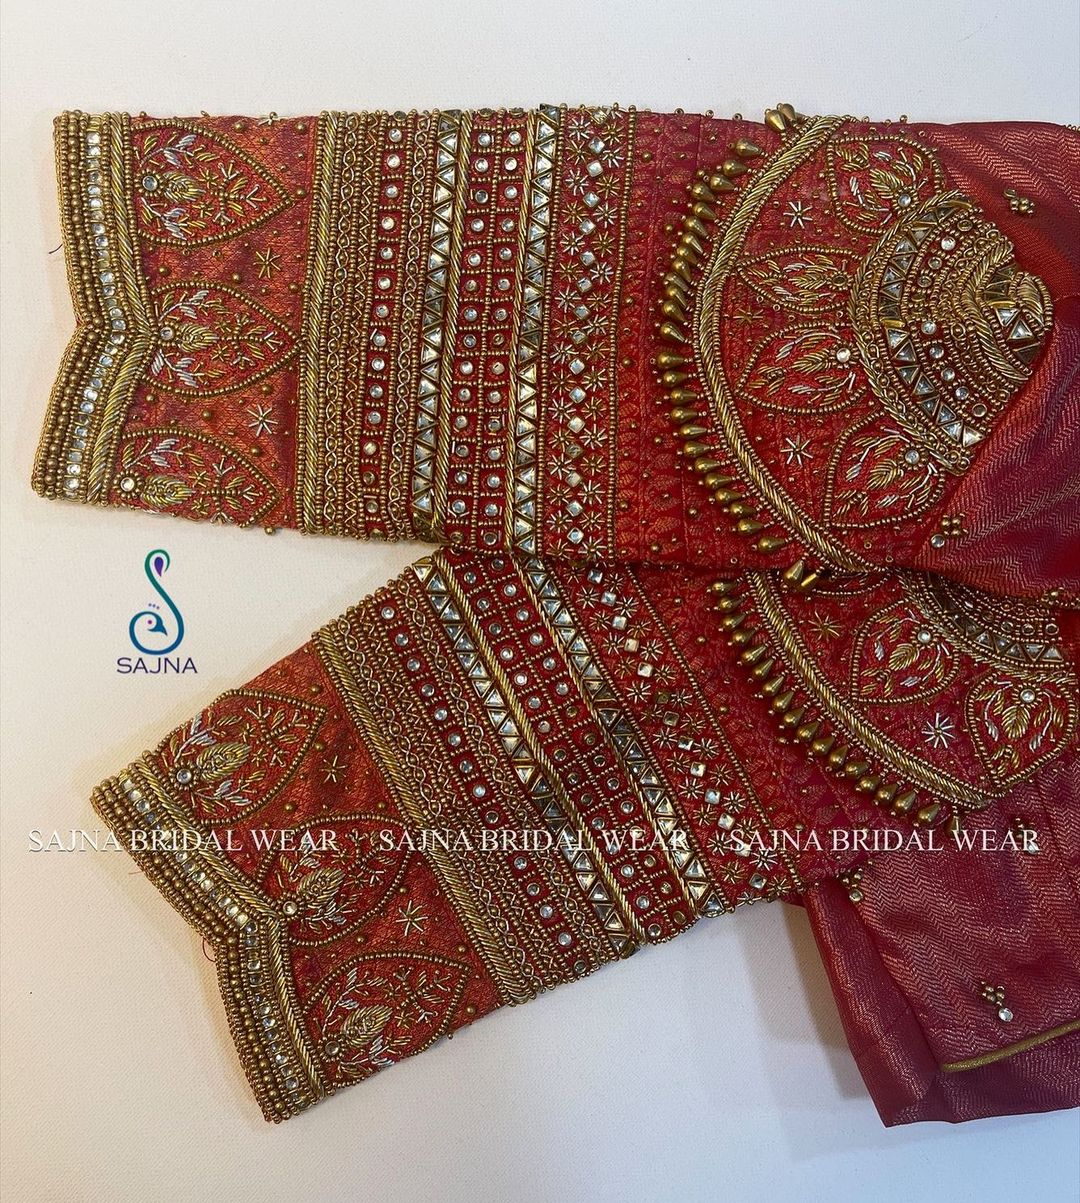 Stunning bridal blouse with stone and beads aari work. 2021-08-05